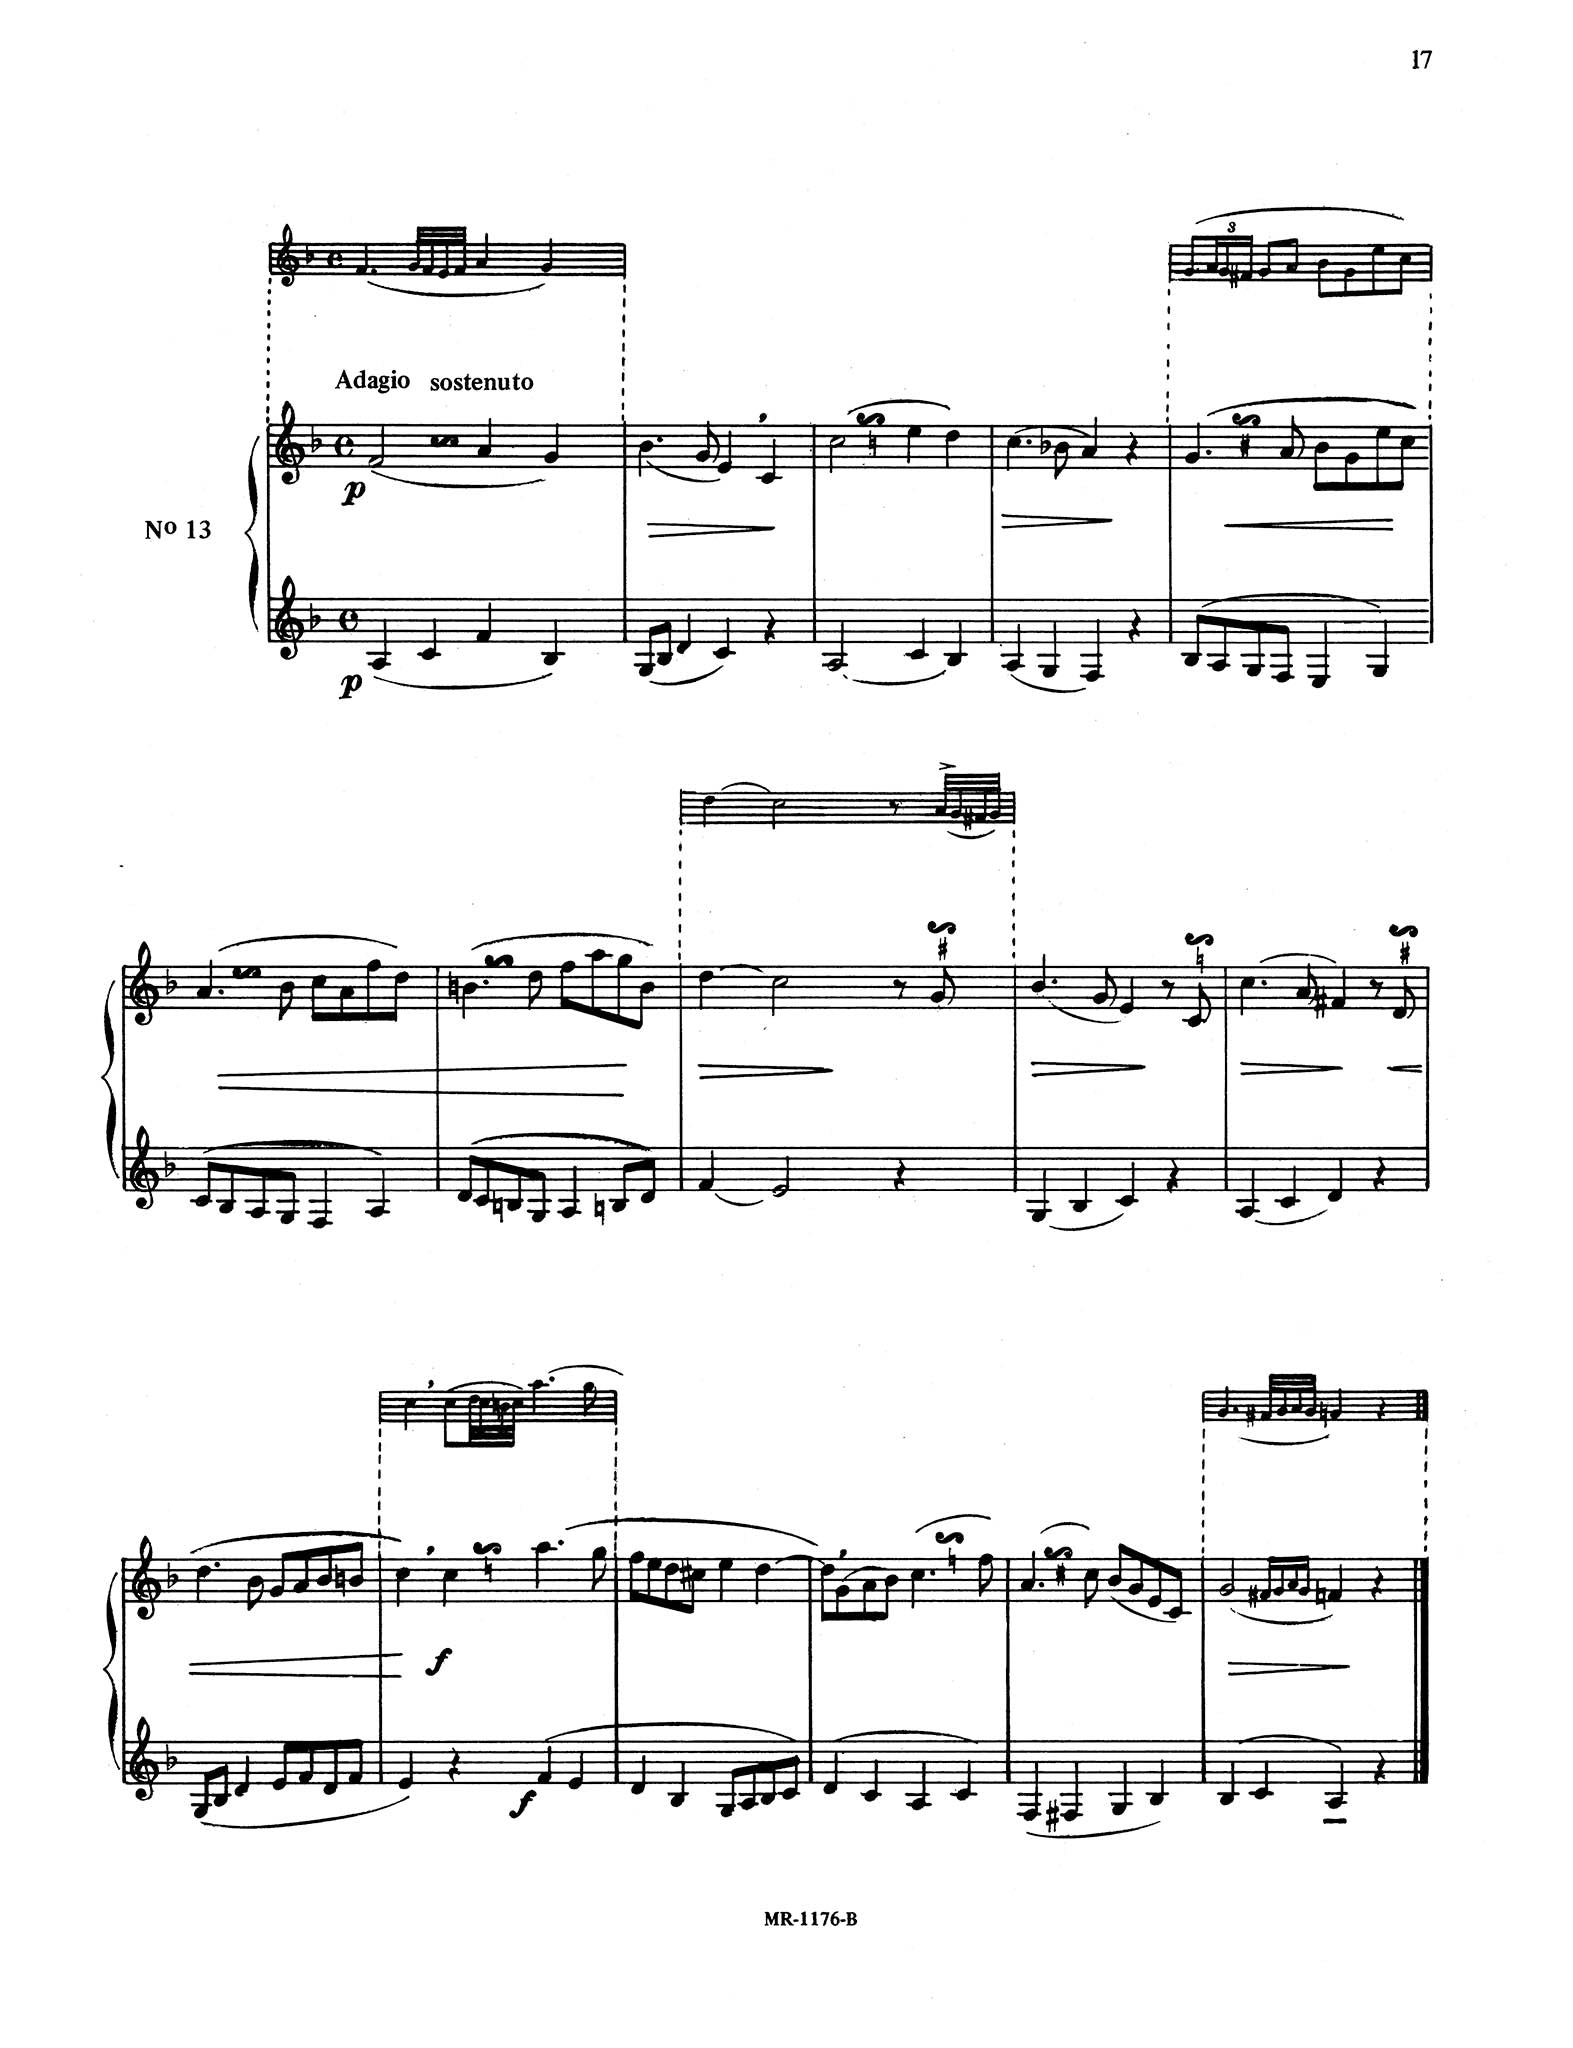 30 Intermediate Studies in Style for Clarinet Page 17